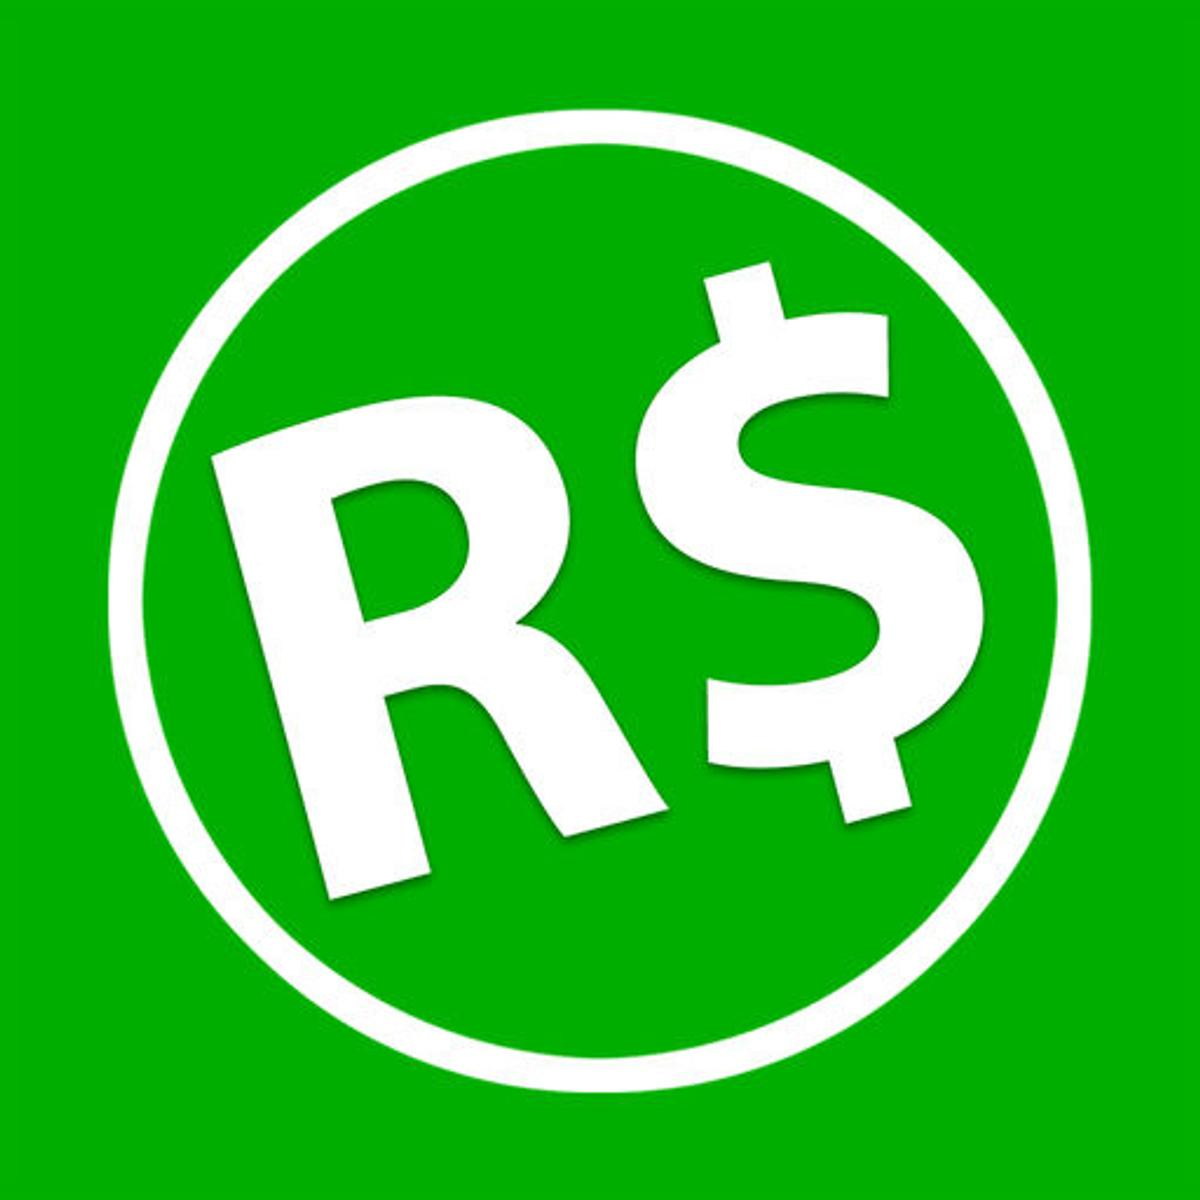 Robux For Roblox 1,000 (CHEAP)